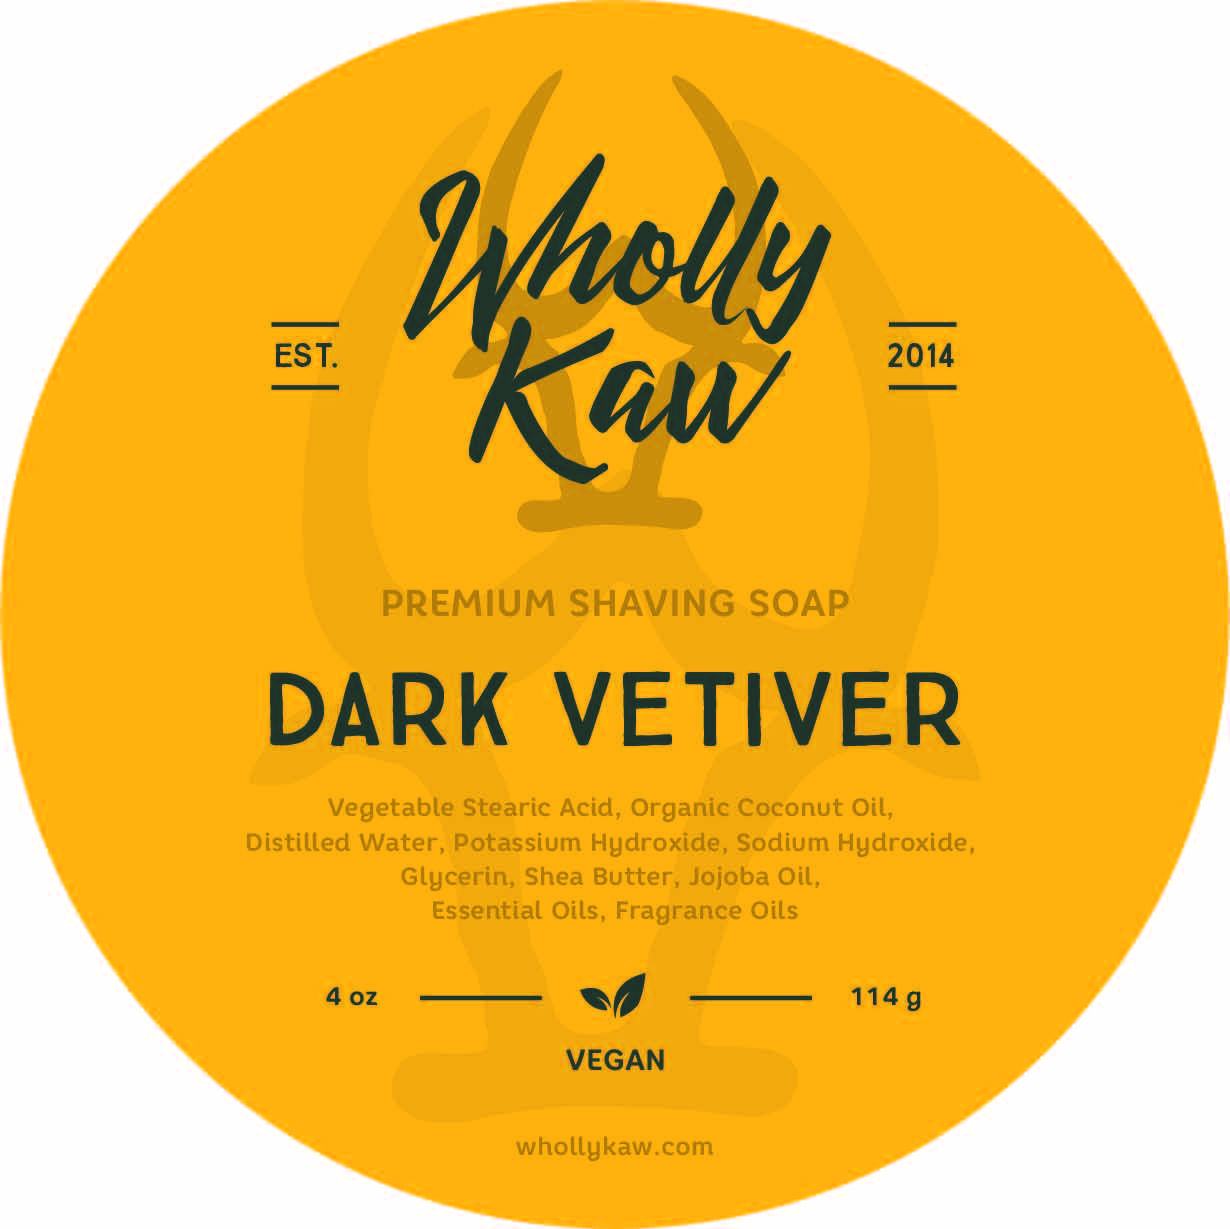 Wholly Kaw - Dark Vetiver - Soap (Vegan) image